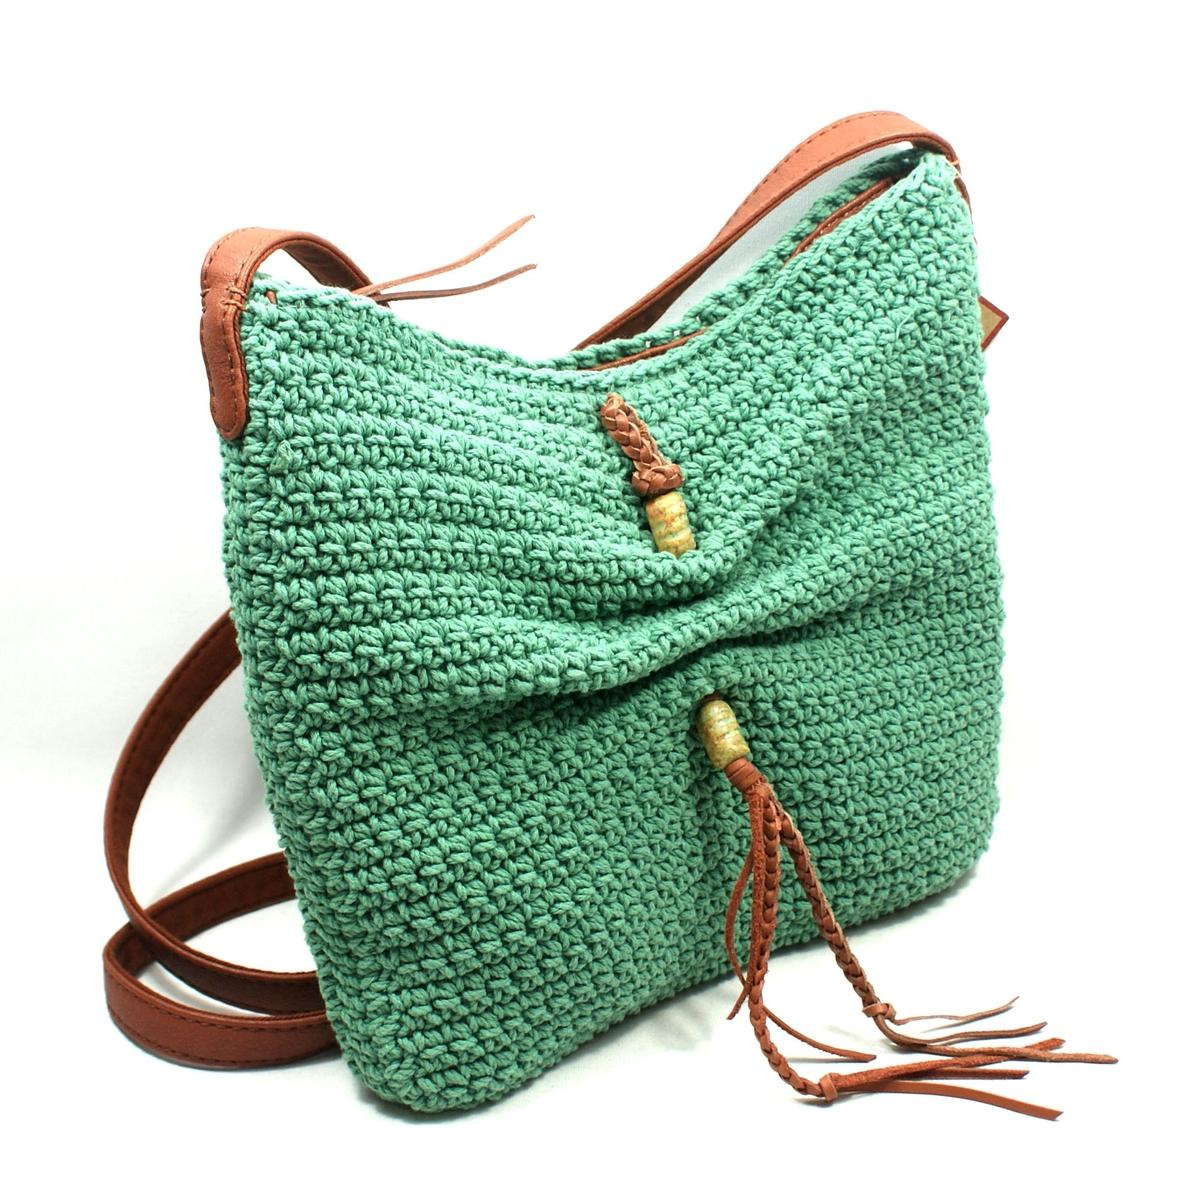 Crochet Crossbody Purse : Lucky Brand Ojai Crochet Green Swing/ Crossbody Bag #HKRU1384 Lucky ...